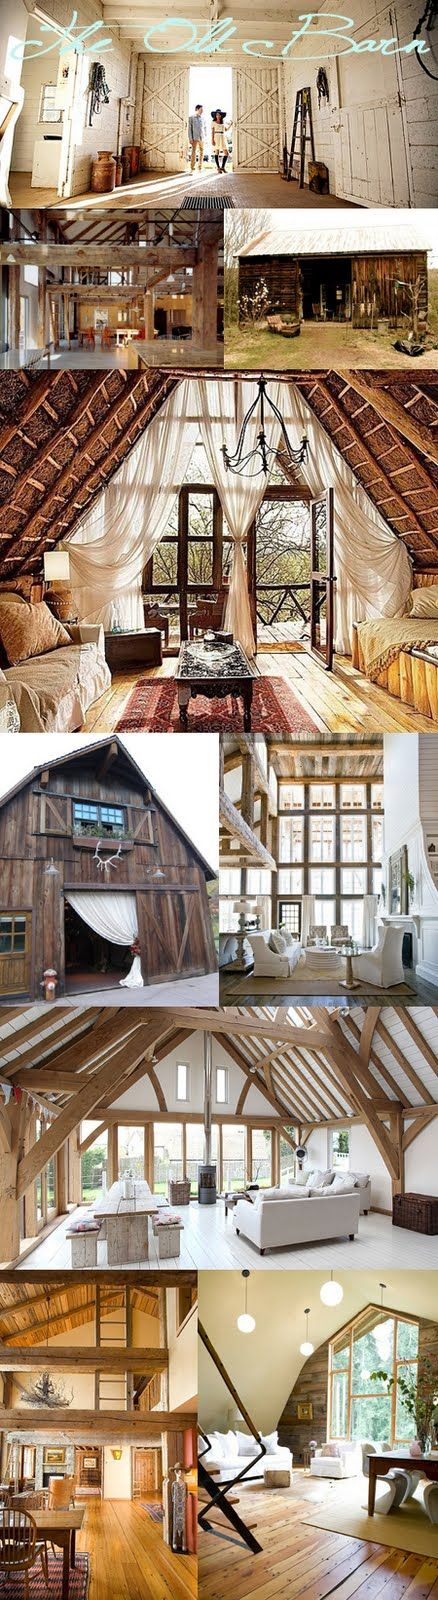 """I wanna live in a barn! That way when someone says """"were to raised in a barn?"""" I can say """"yes, yes I was!"""""""